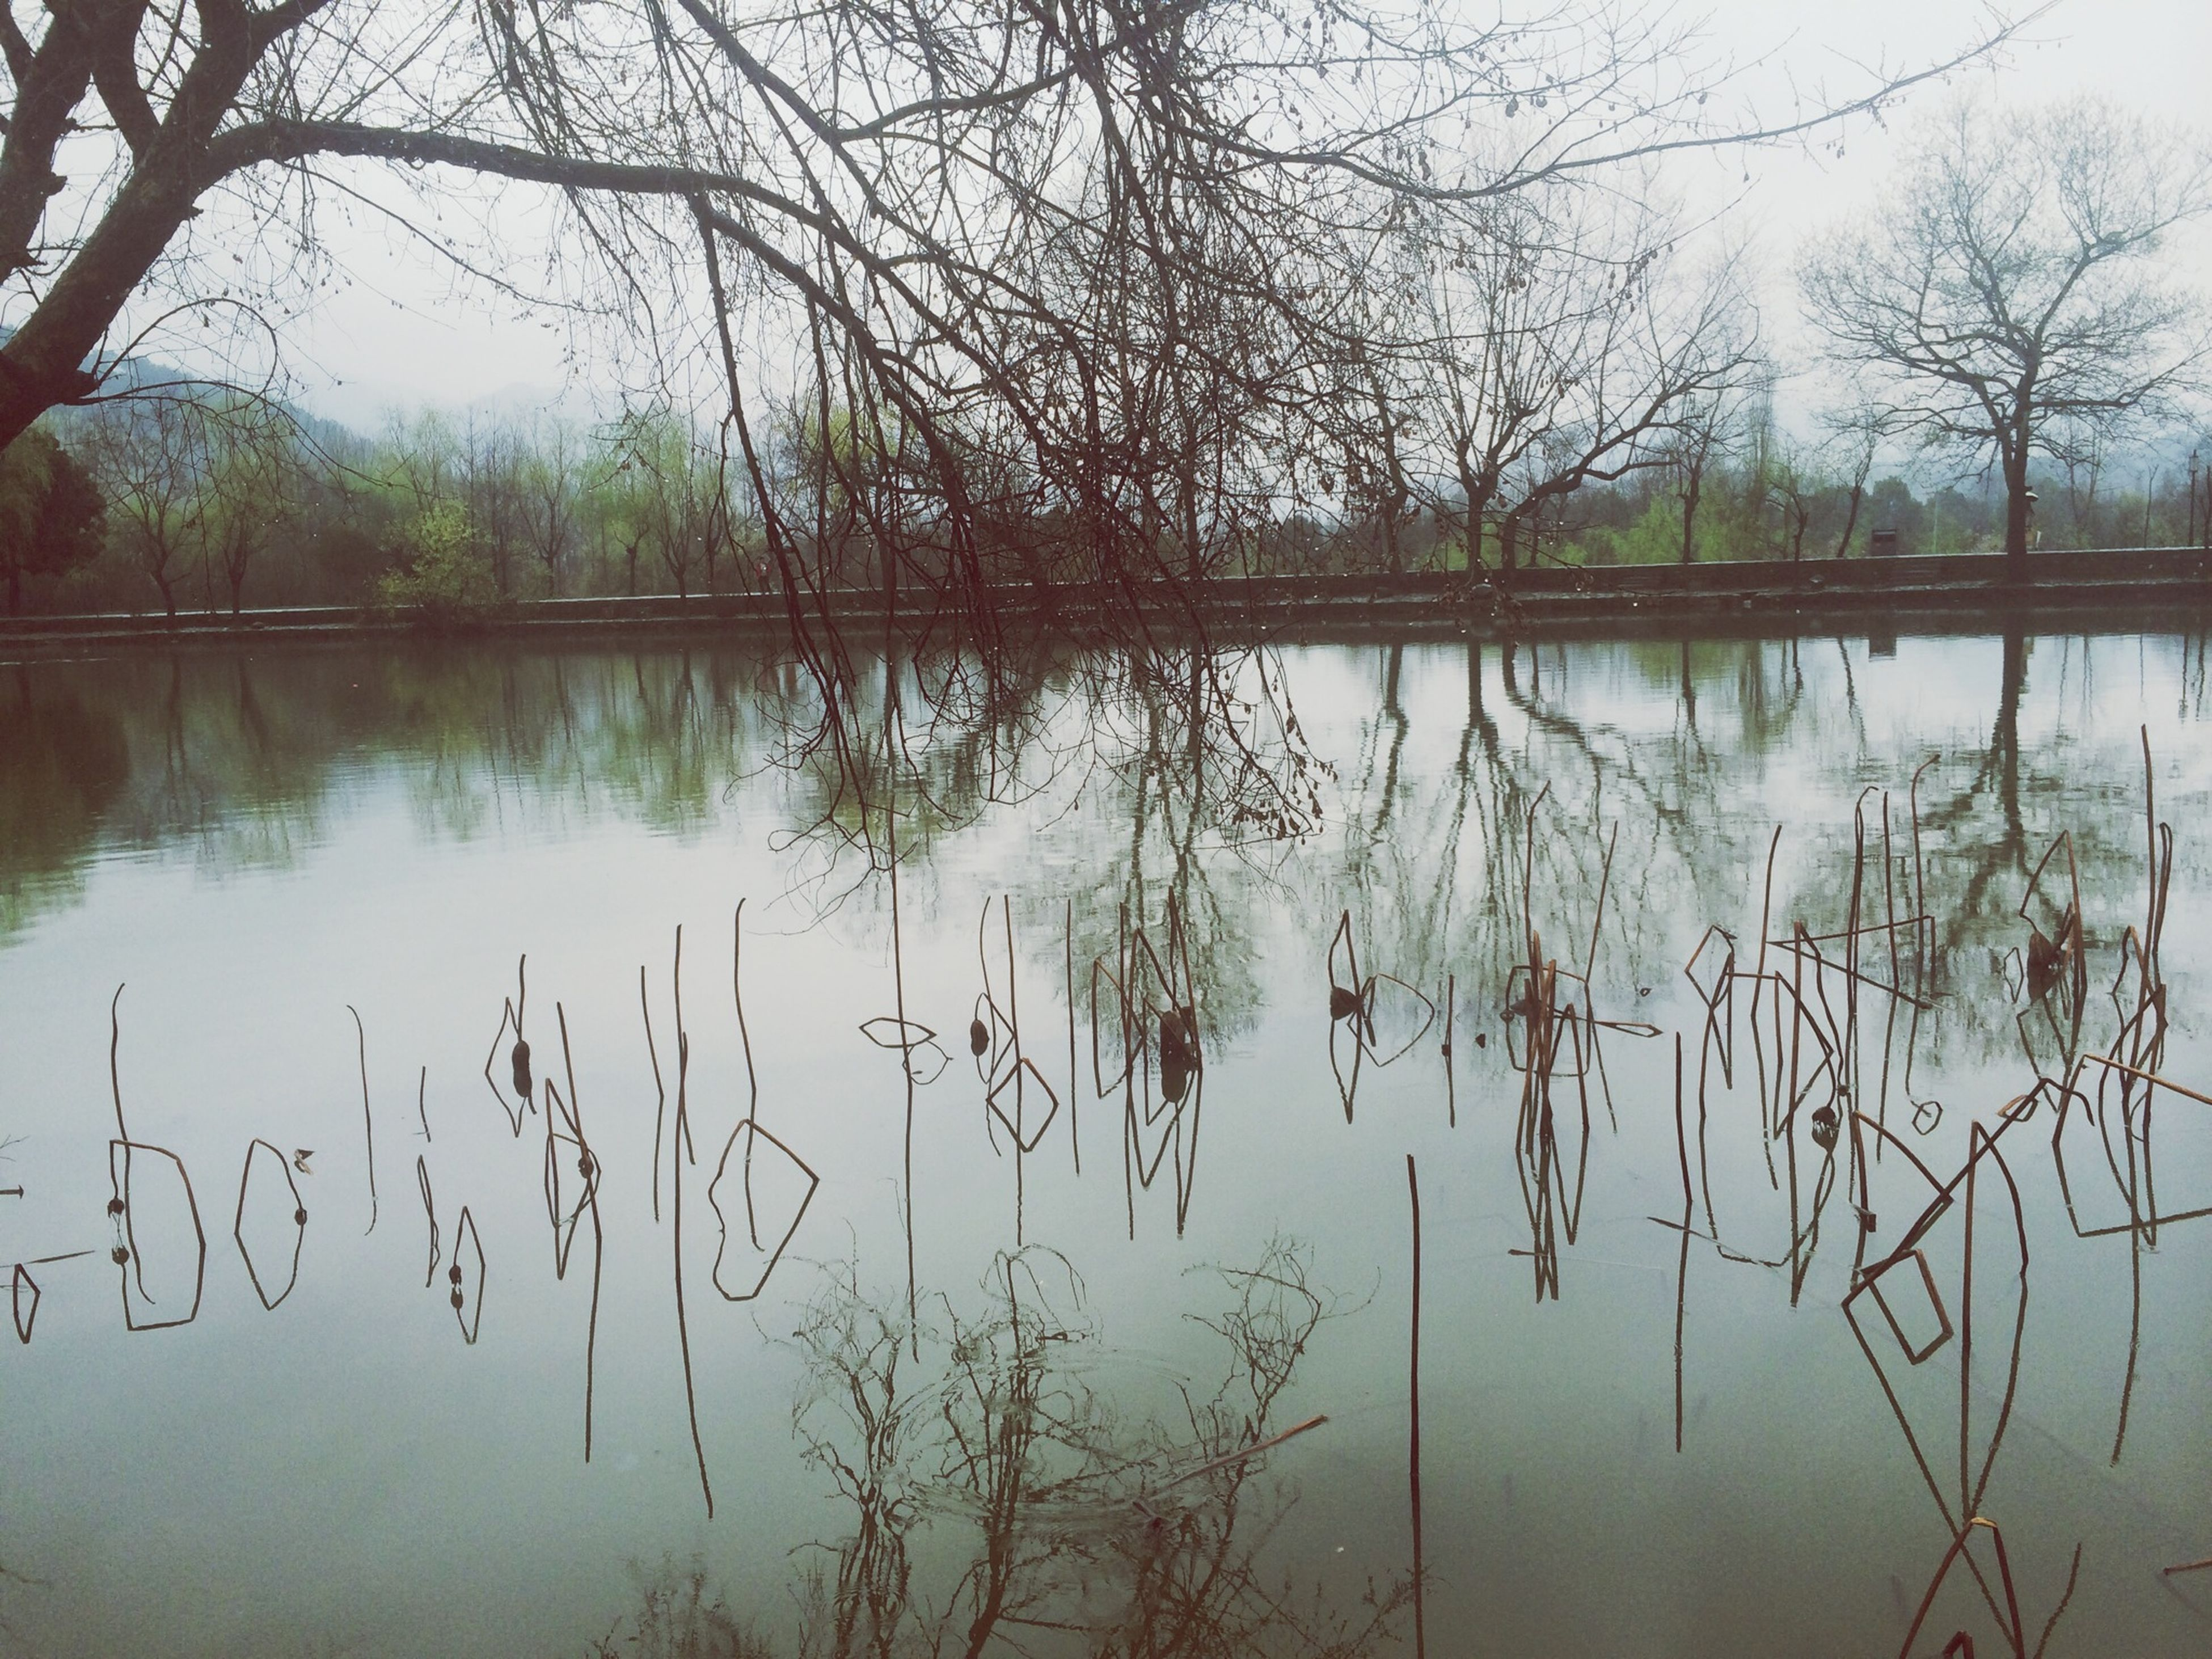 water, tree, lake, branch, reflection, tranquility, nature, tranquil scene, bare tree, beauty in nature, scenics, sky, growth, waterfront, plant, standing water, river, day, outdoors, idyllic